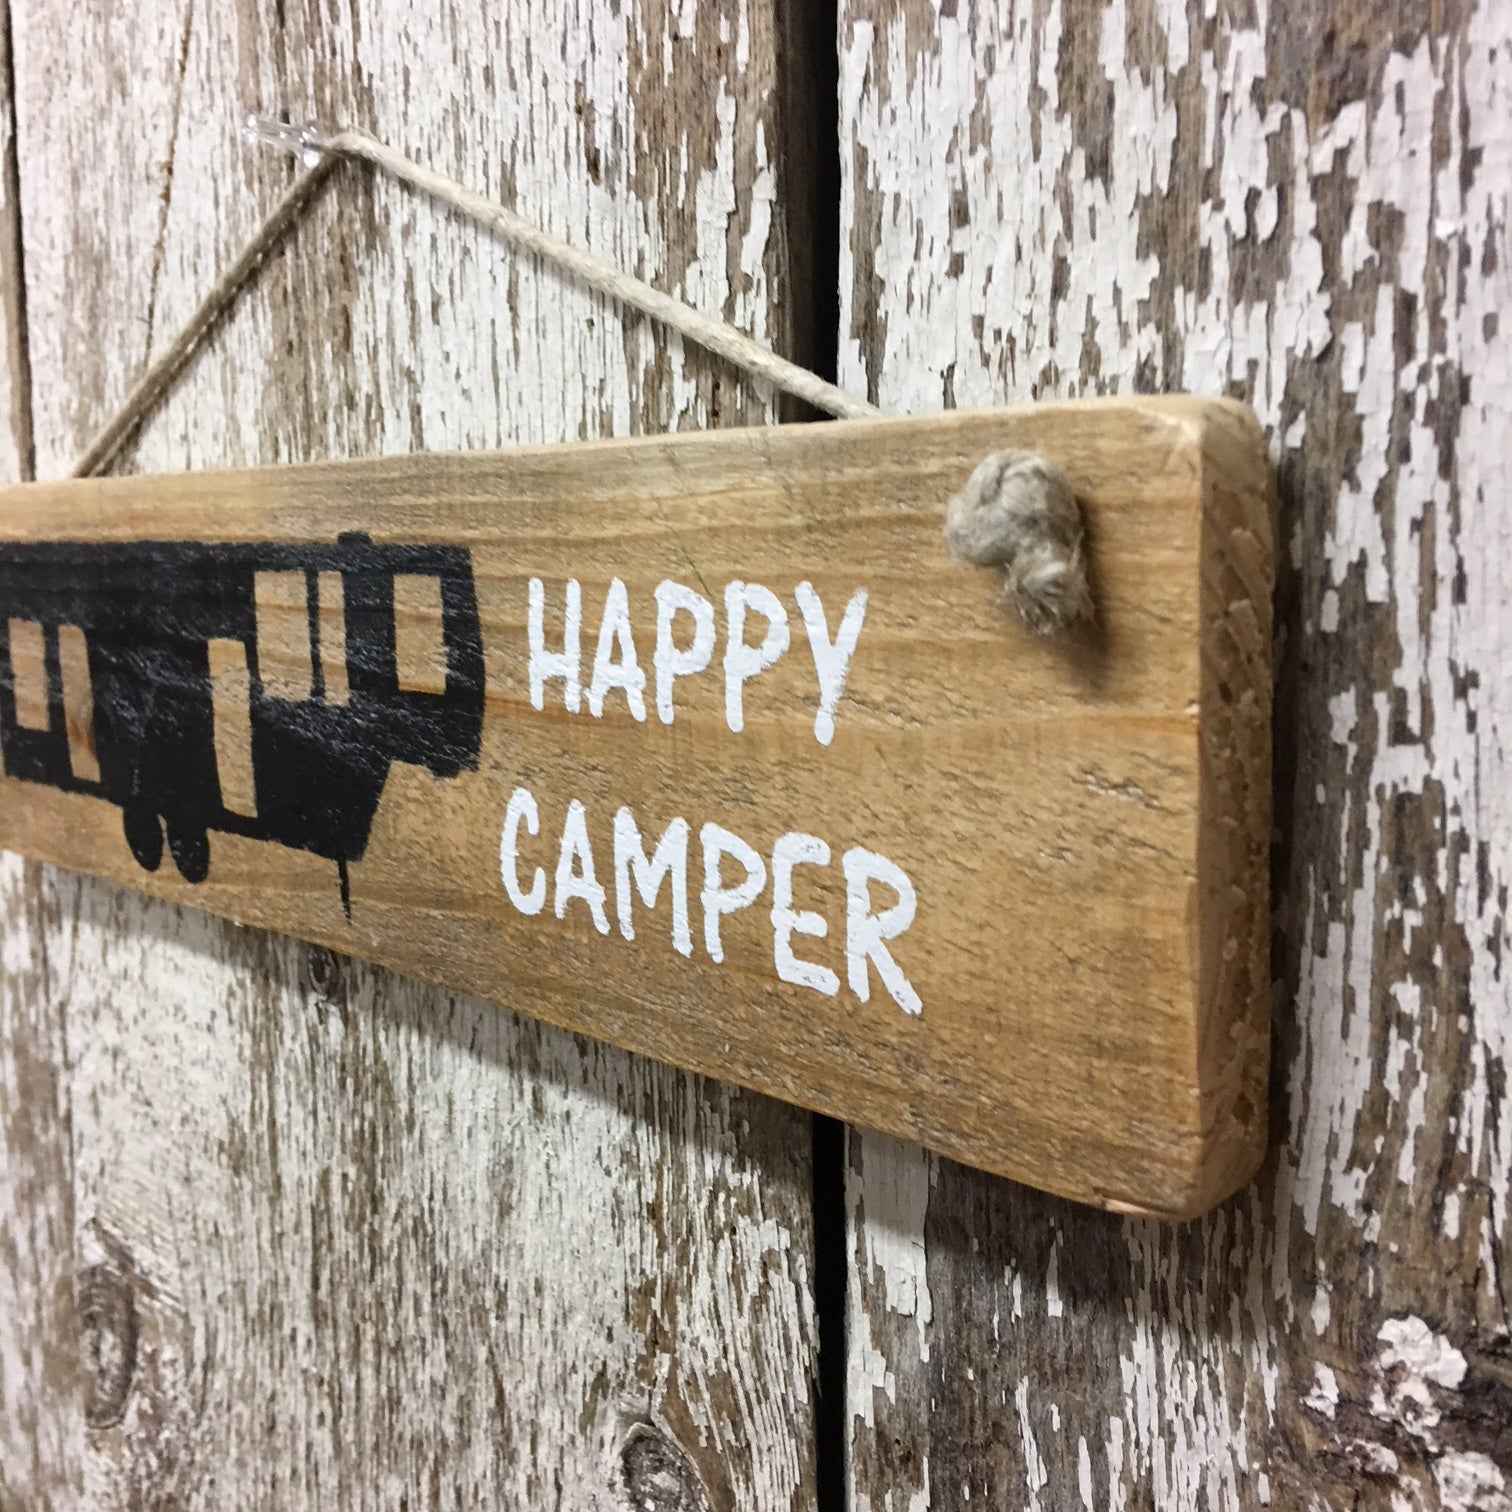 camping decor 5th wheel camper black and white wood sign